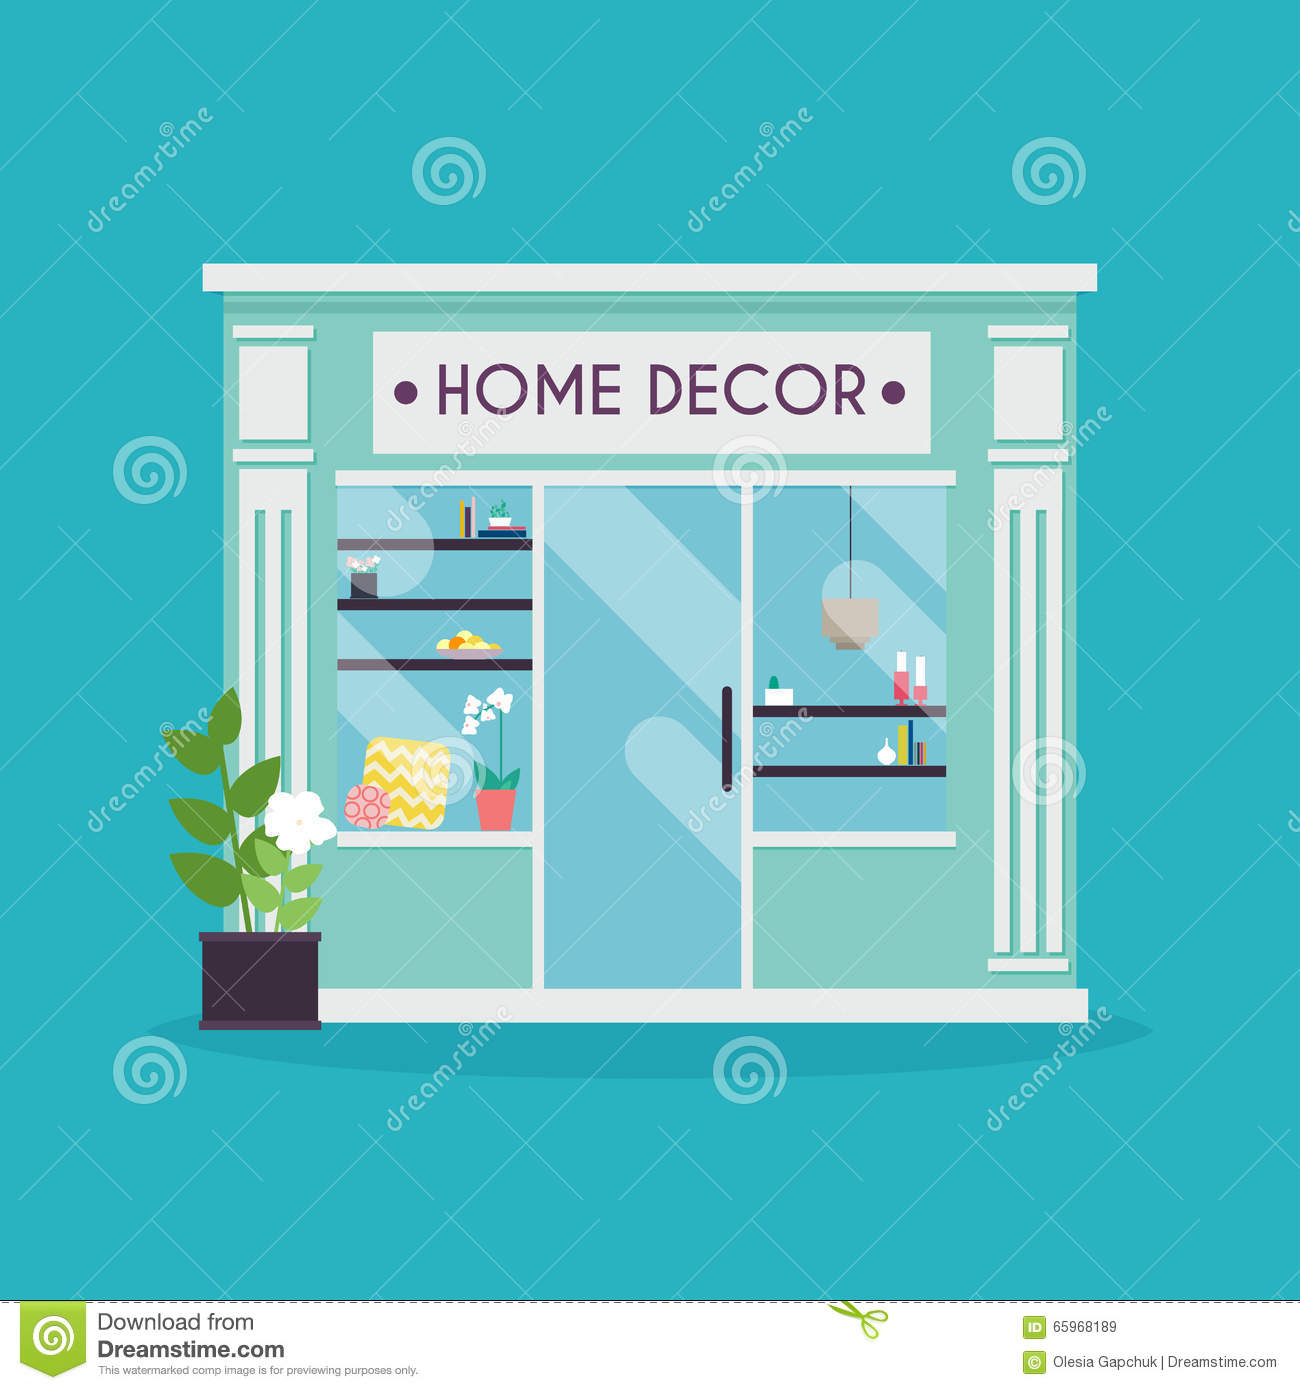 Home Furnishing Websites: Home Decor Facade. Decor Shop. Ideal For Market Business